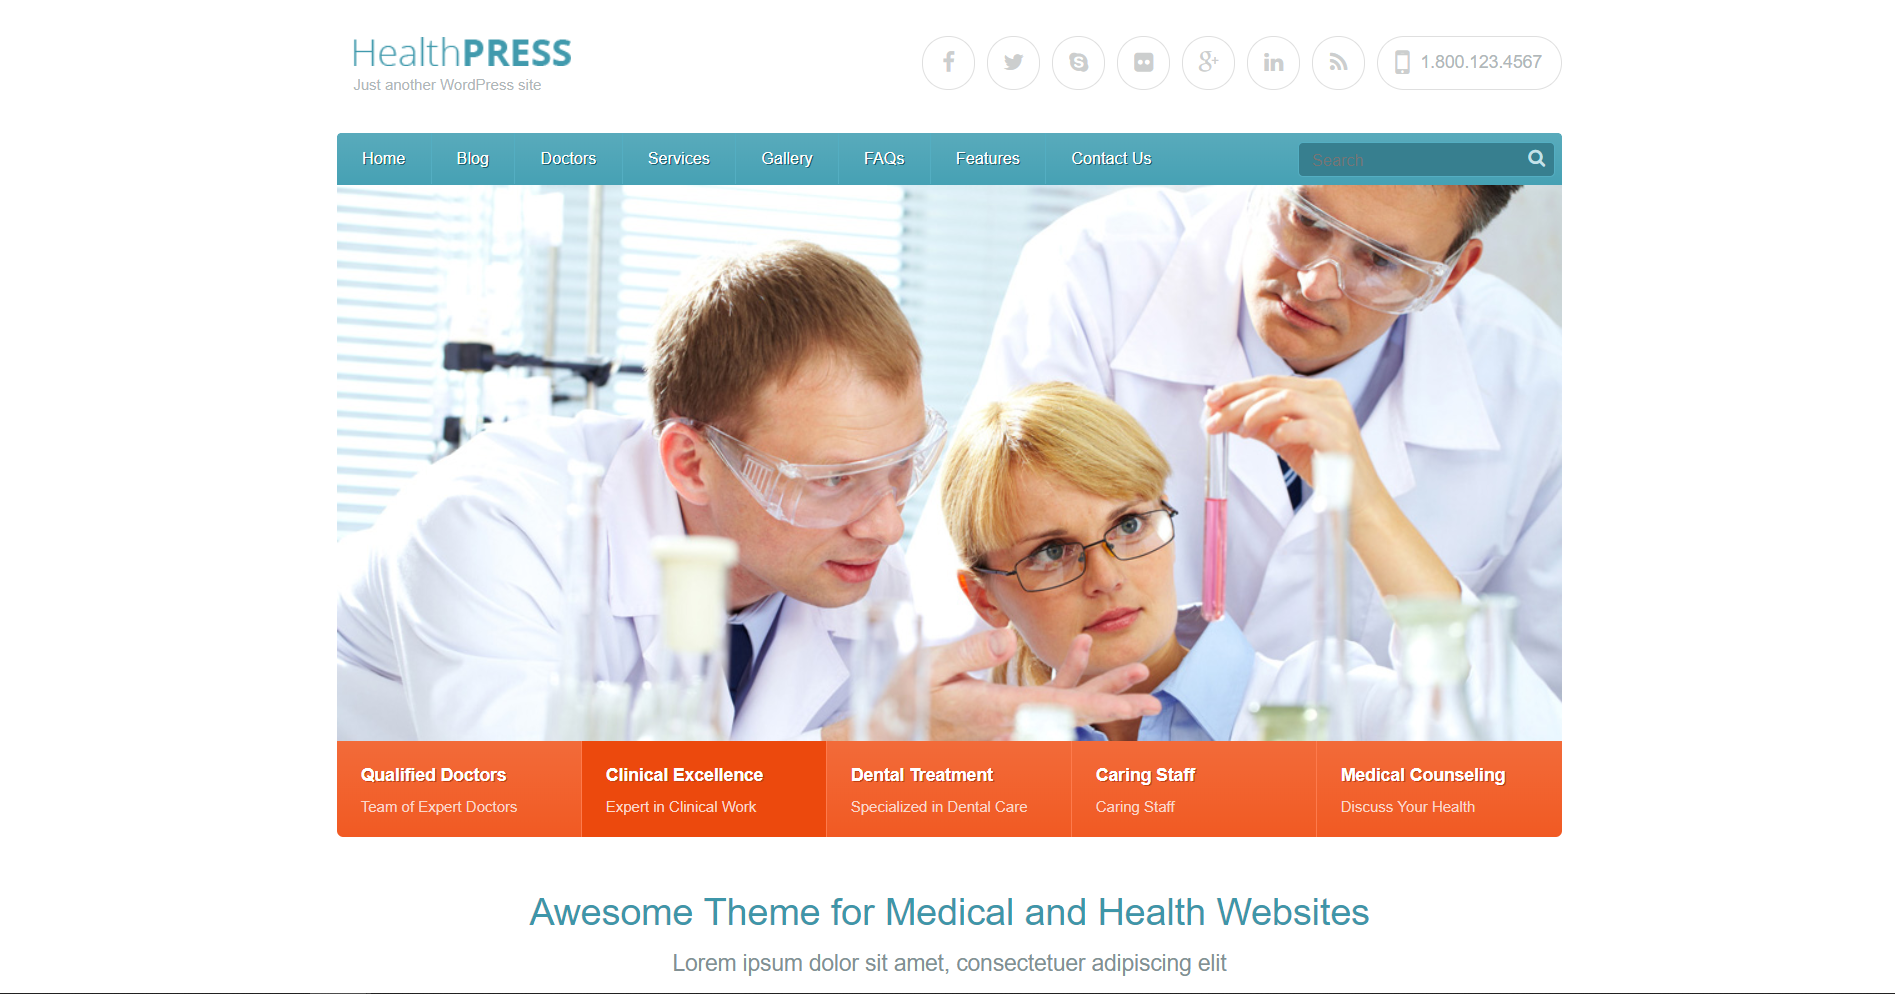 6. HealthPress - Health and Medical WordPress Theme